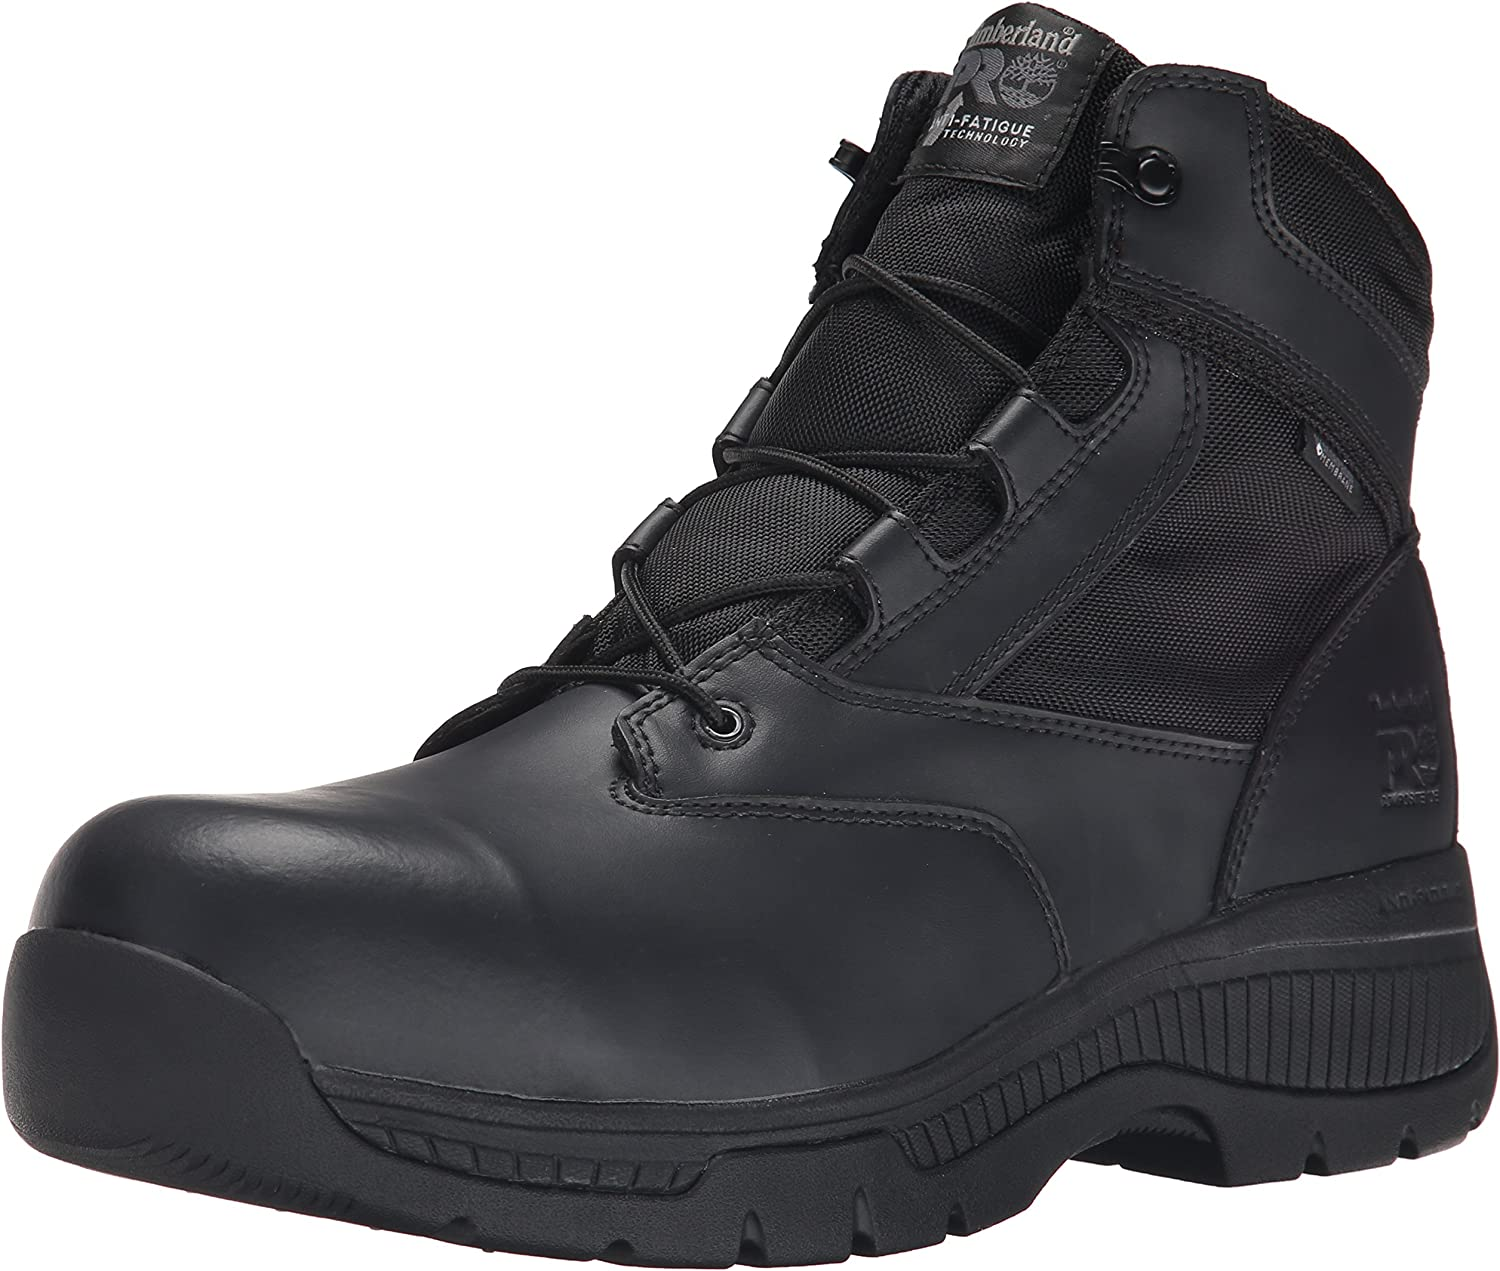 "Timberland PRO Men's 6"" Valor Comp Toe Waterproof Side Zip Work Boot"